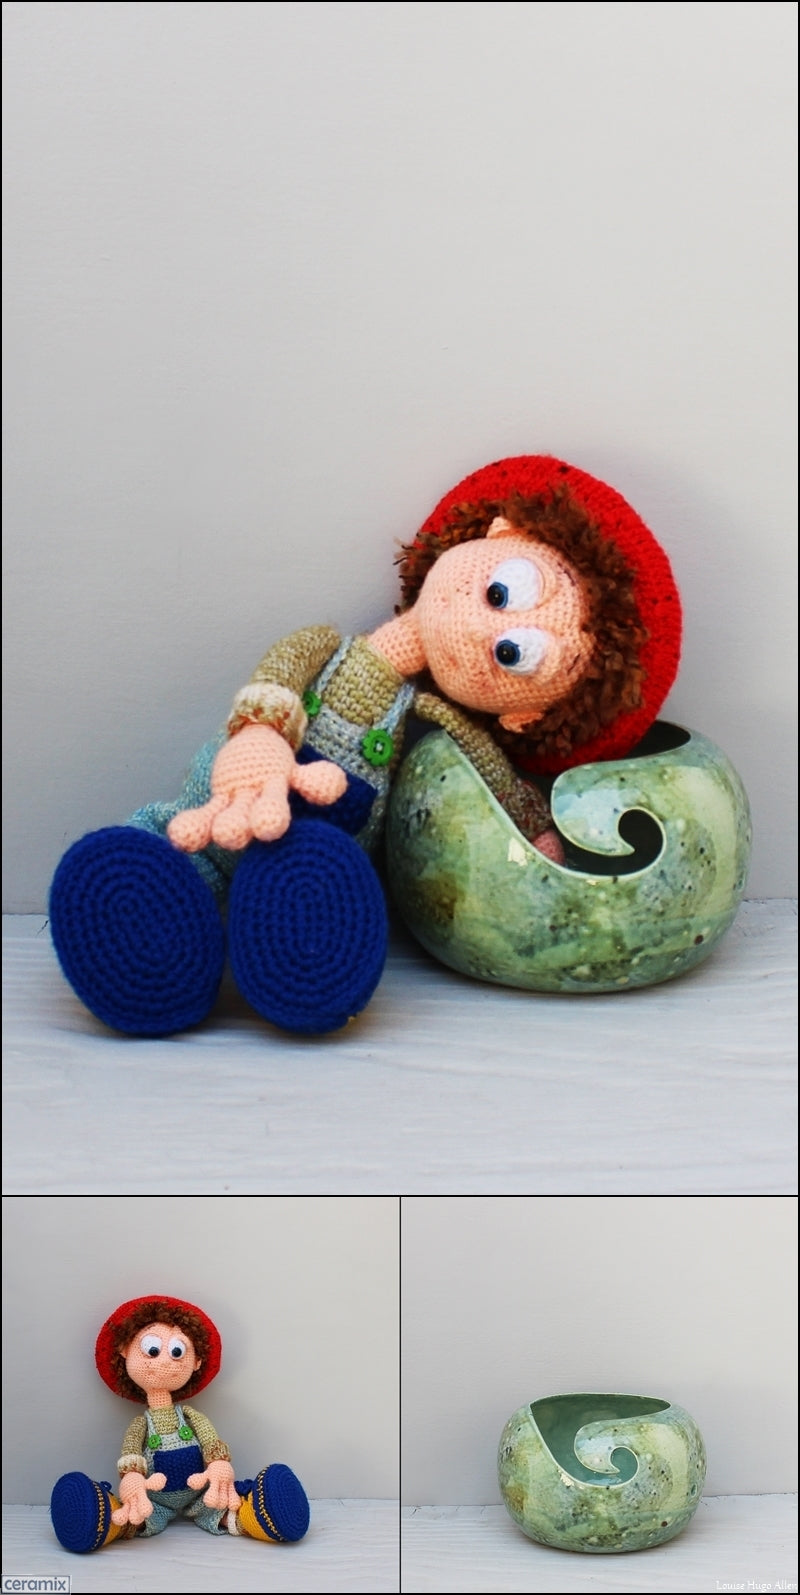 Orphan Bob soft toy and Yarn bowl handmade in South Africa